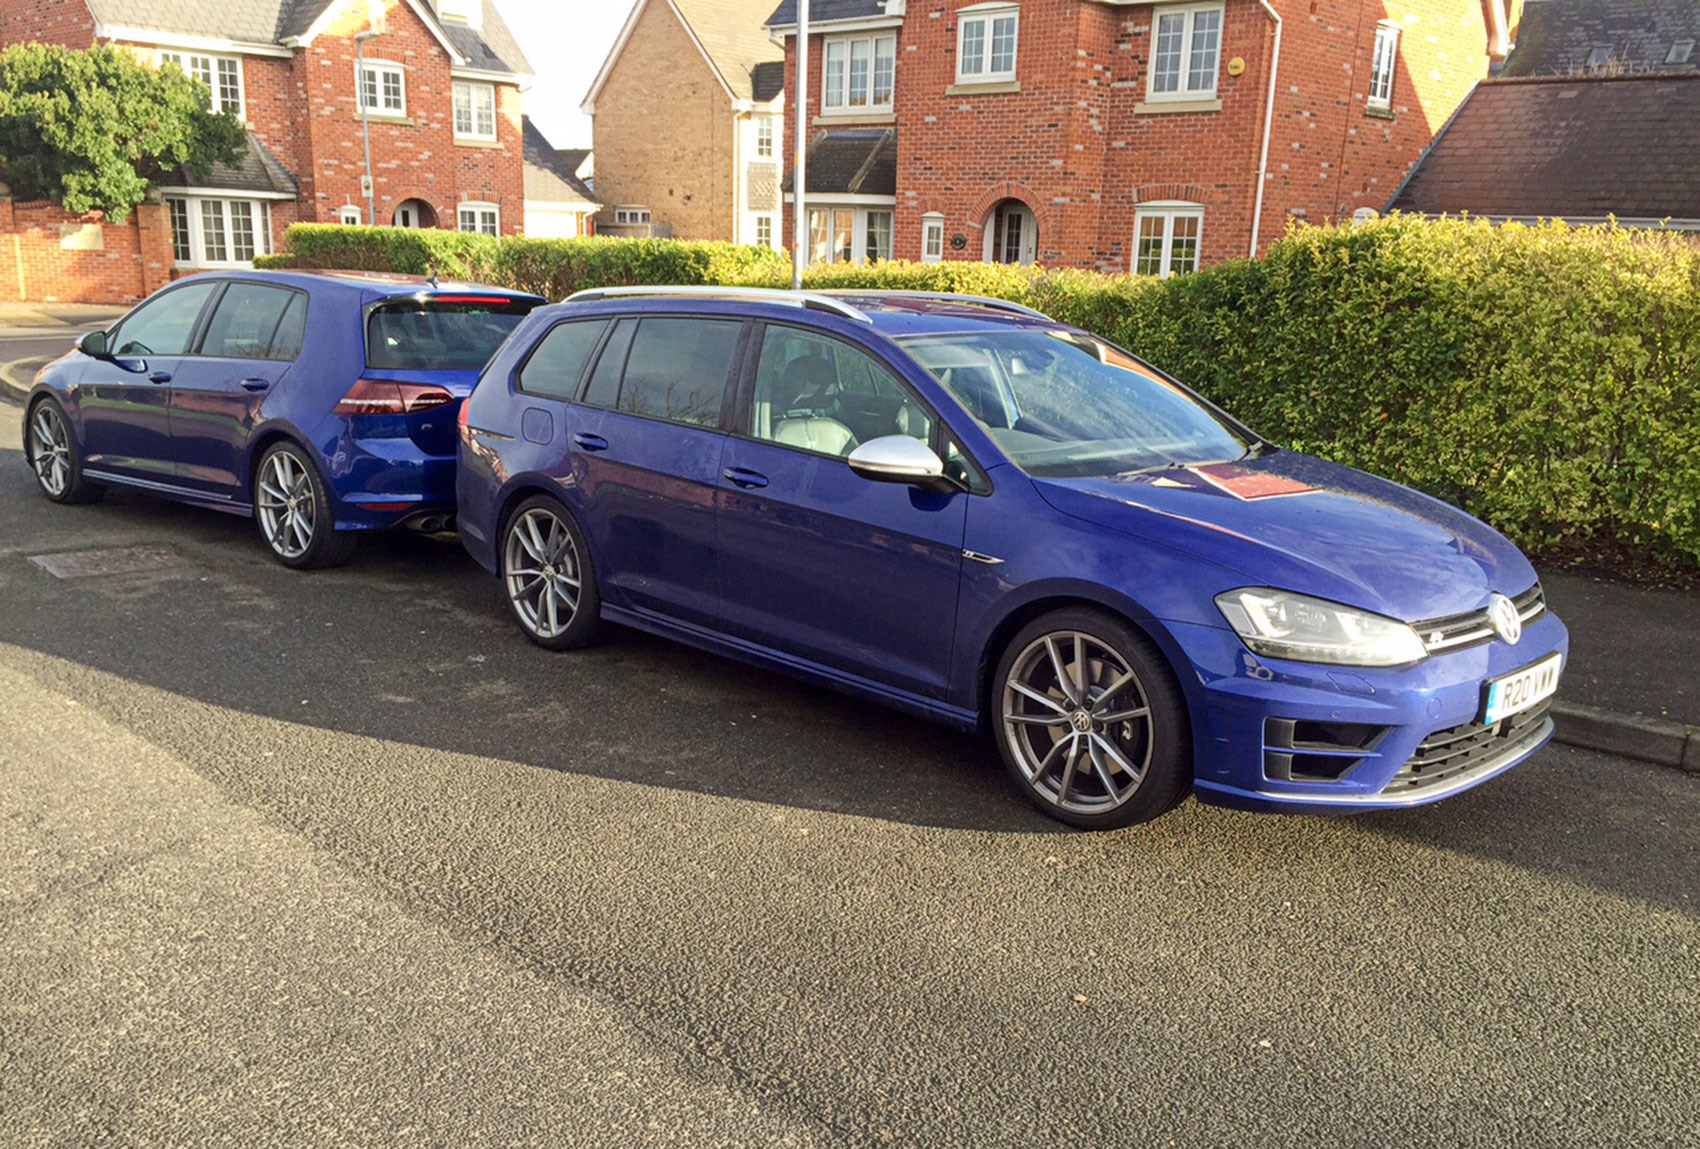 Vw Golf R As Estate Or Hatchback Ben Barry Decides